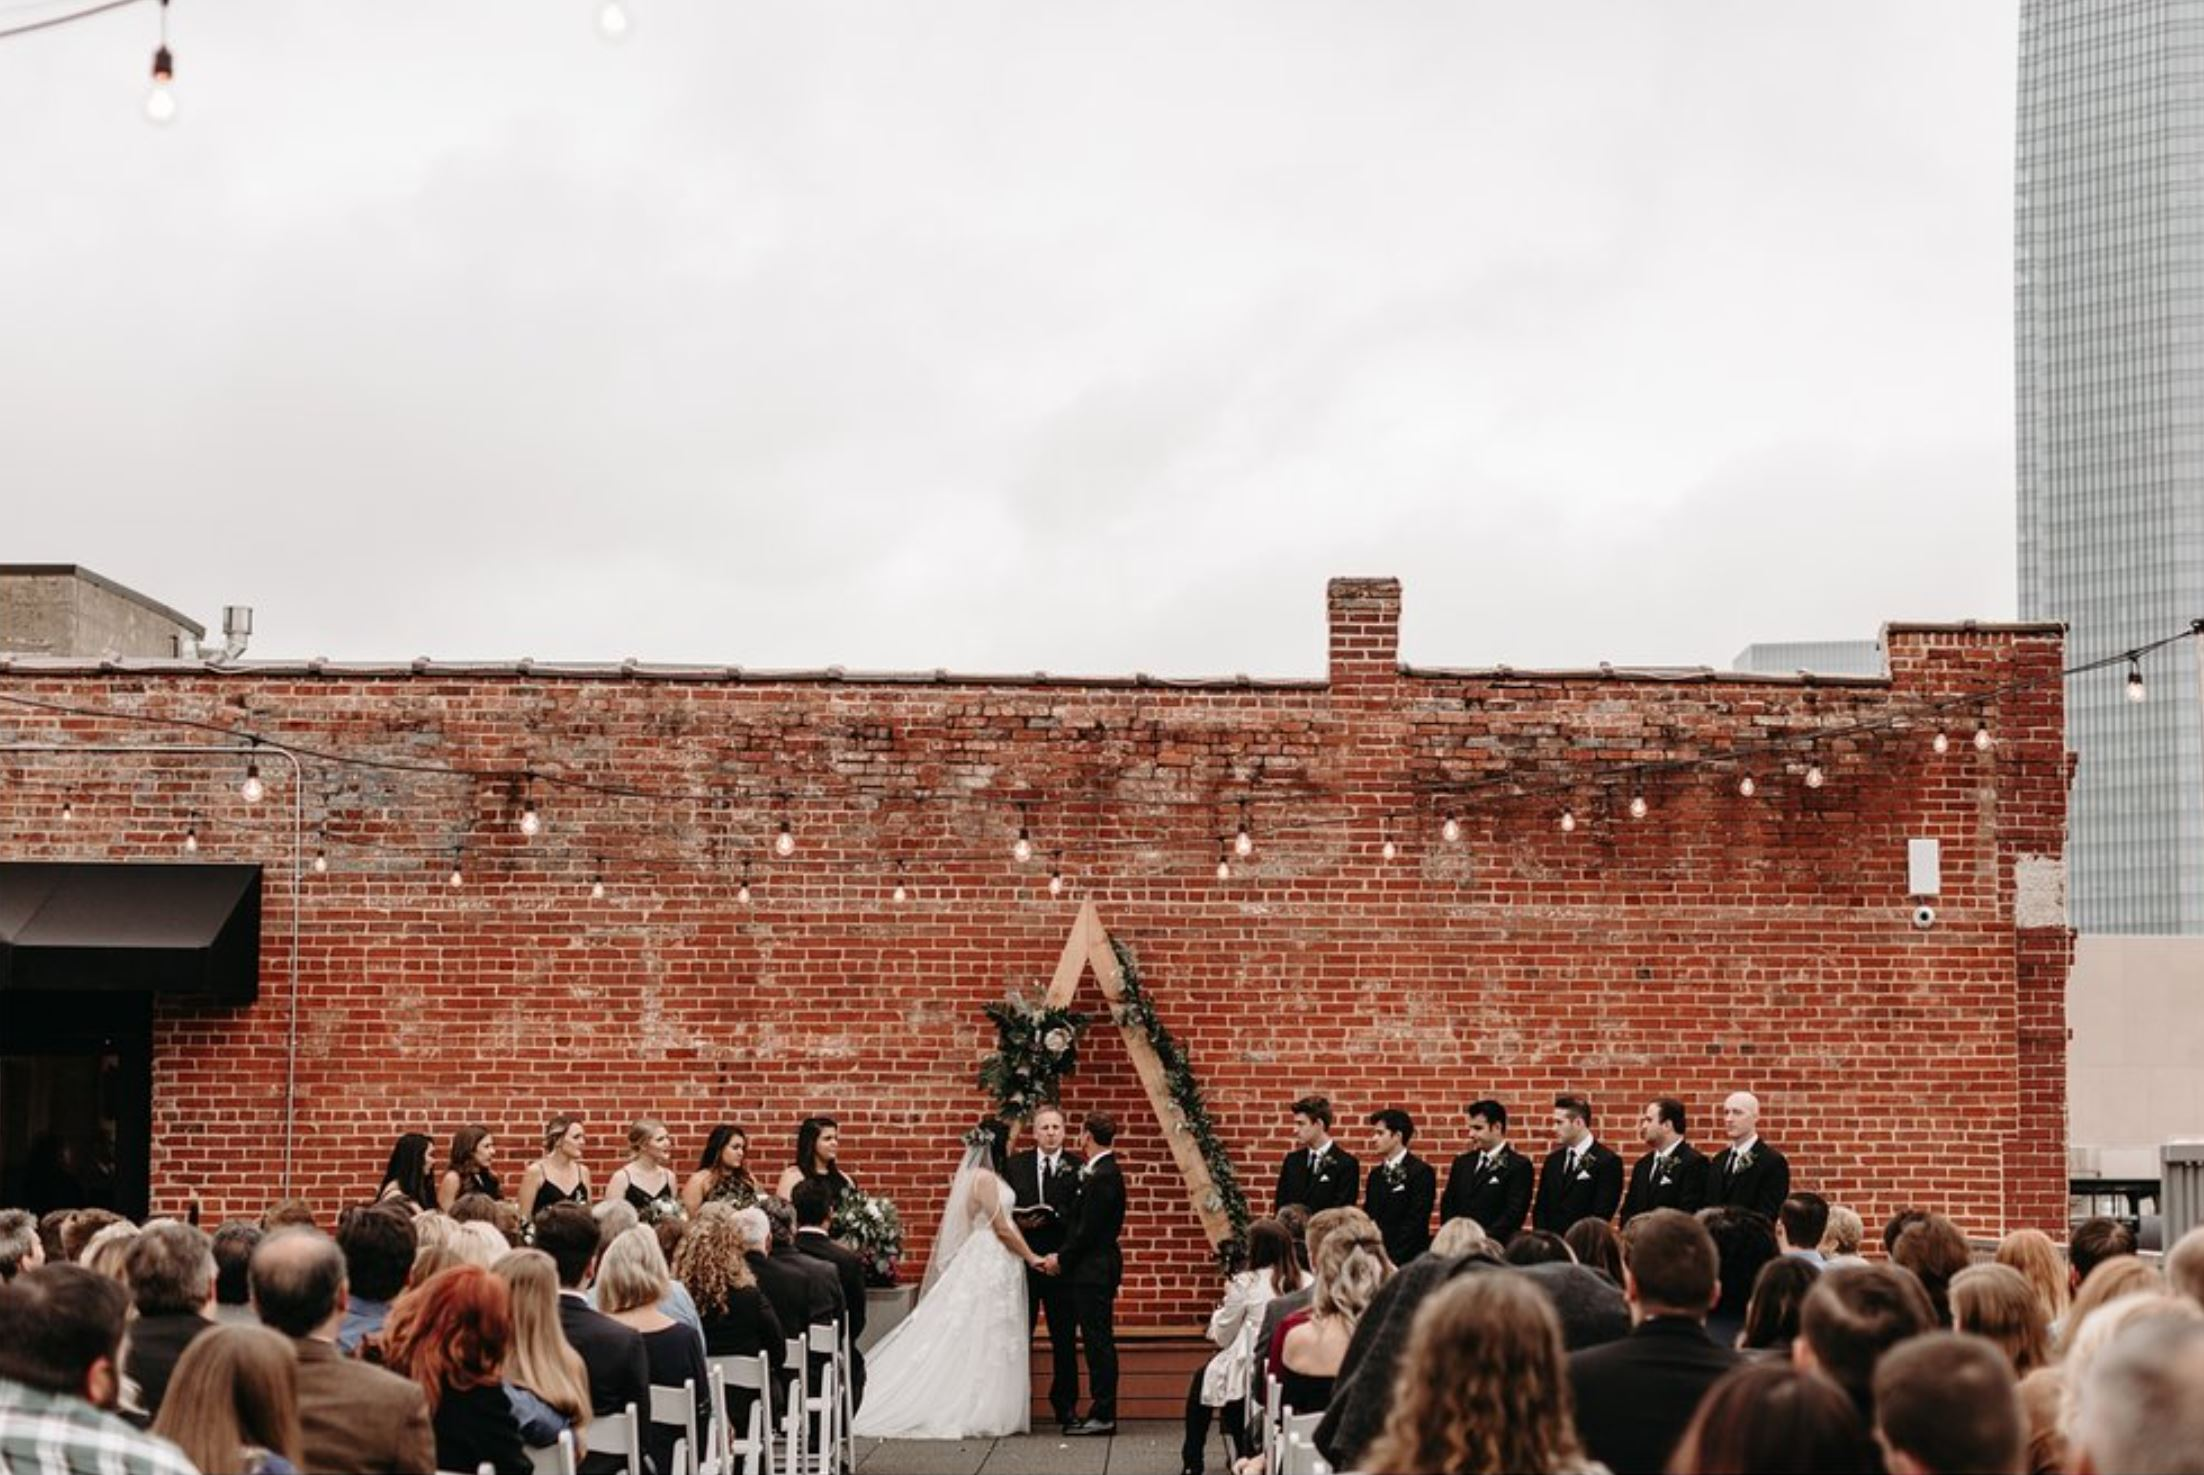 A wedding couple is getting married and is standing in front of a brick wall at Skyline on Brickwotn Canal in Oklahoma.